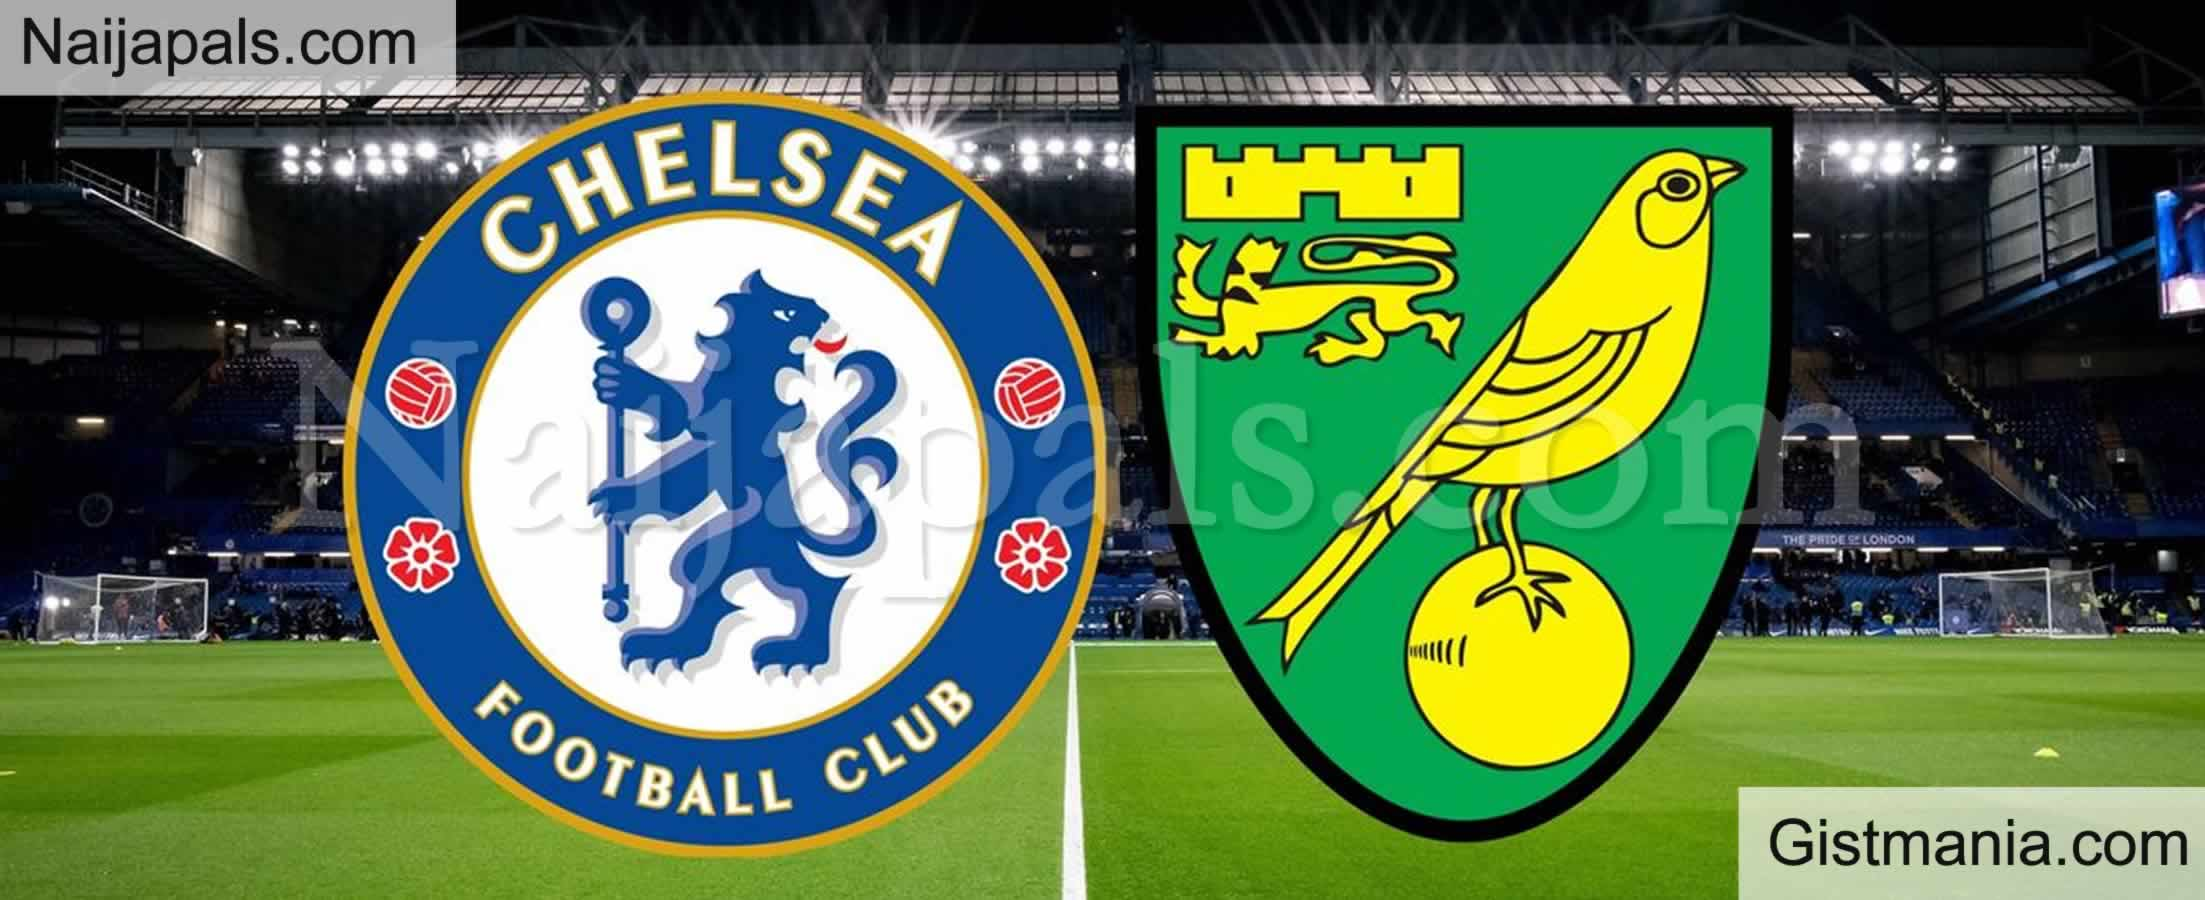 <img alt='.' class='lazyload' data-src='https://img.gistmania.com/emot/soccer.gif' /><b> Chelsea v Norwich : English Premier League Match, Team News, Goal Scorers and Stats</b>